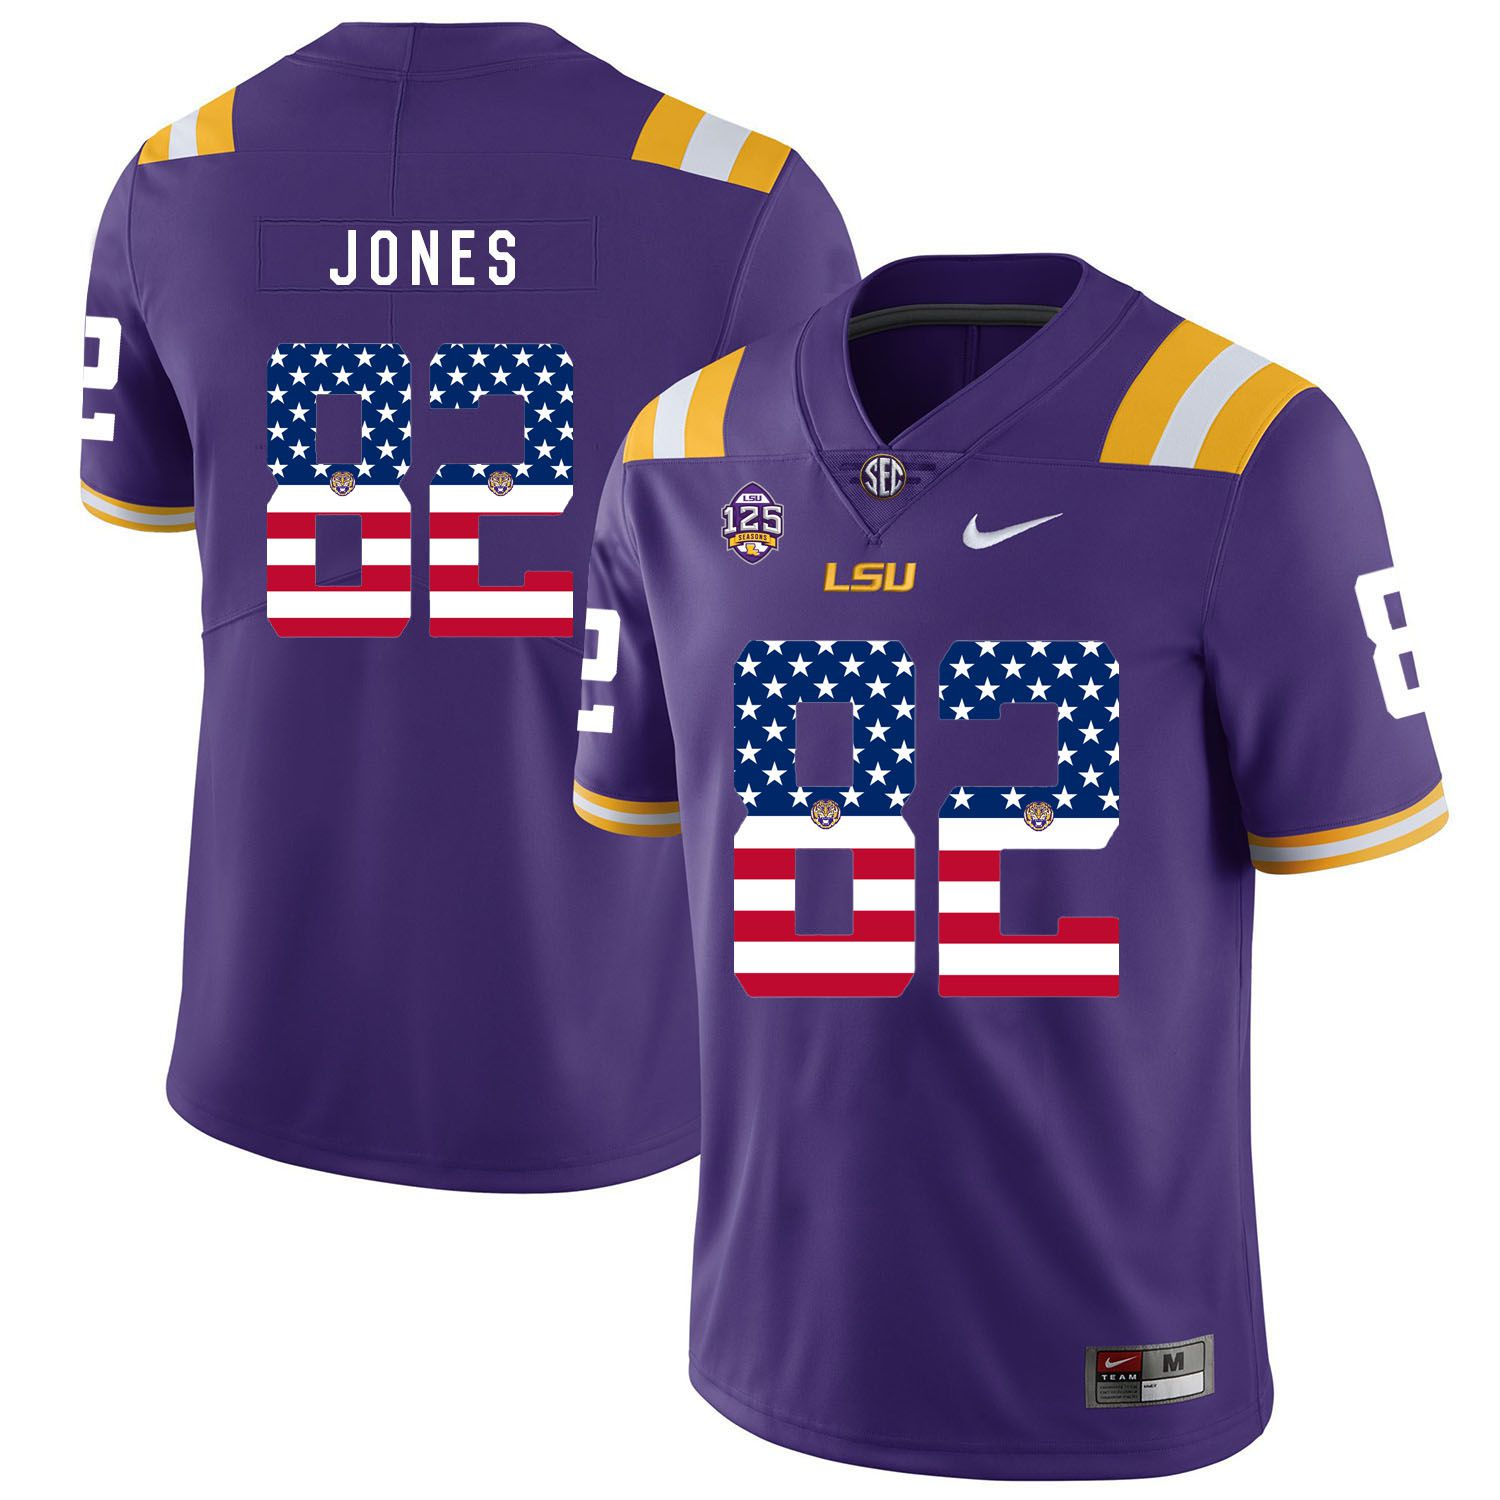 Men LSU Tigers 82 Jones Purple Flag Customized NCAA Jerseys